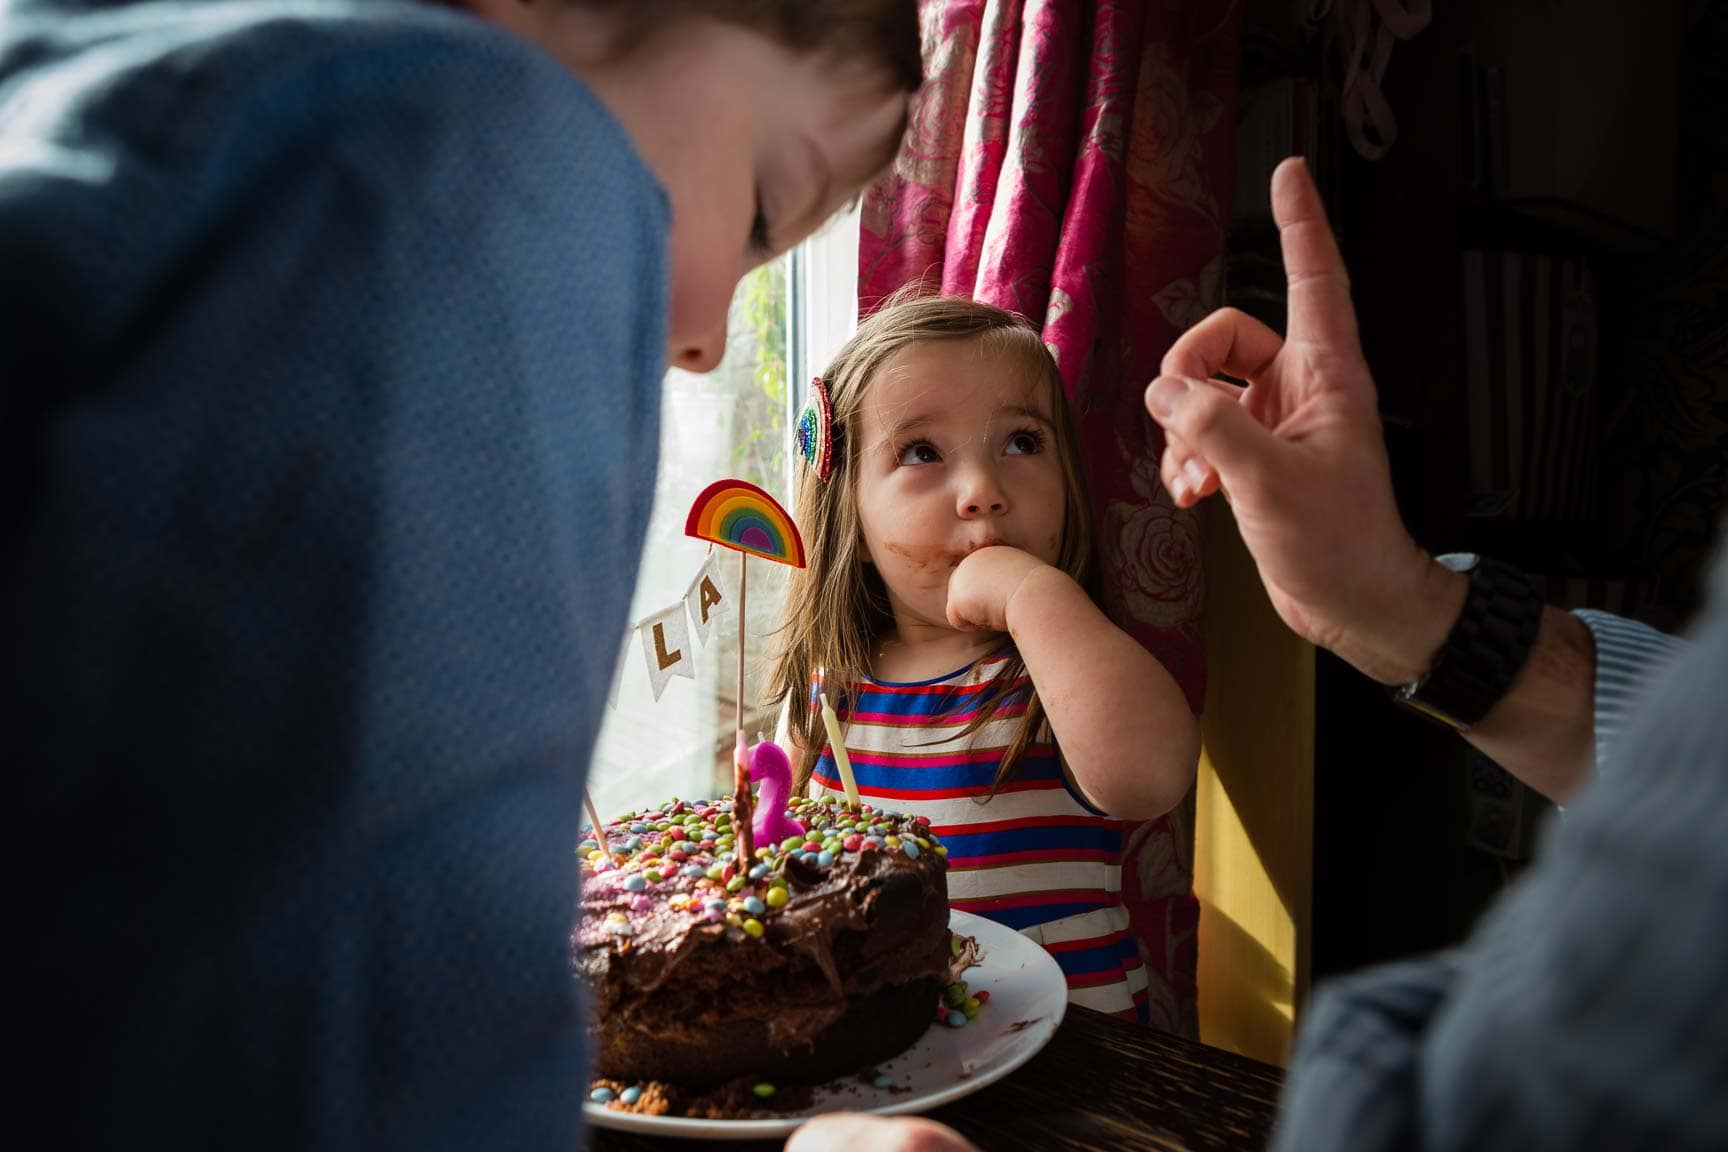 Little girl being told not to stick fingers in her cake - Family Photographer Bath